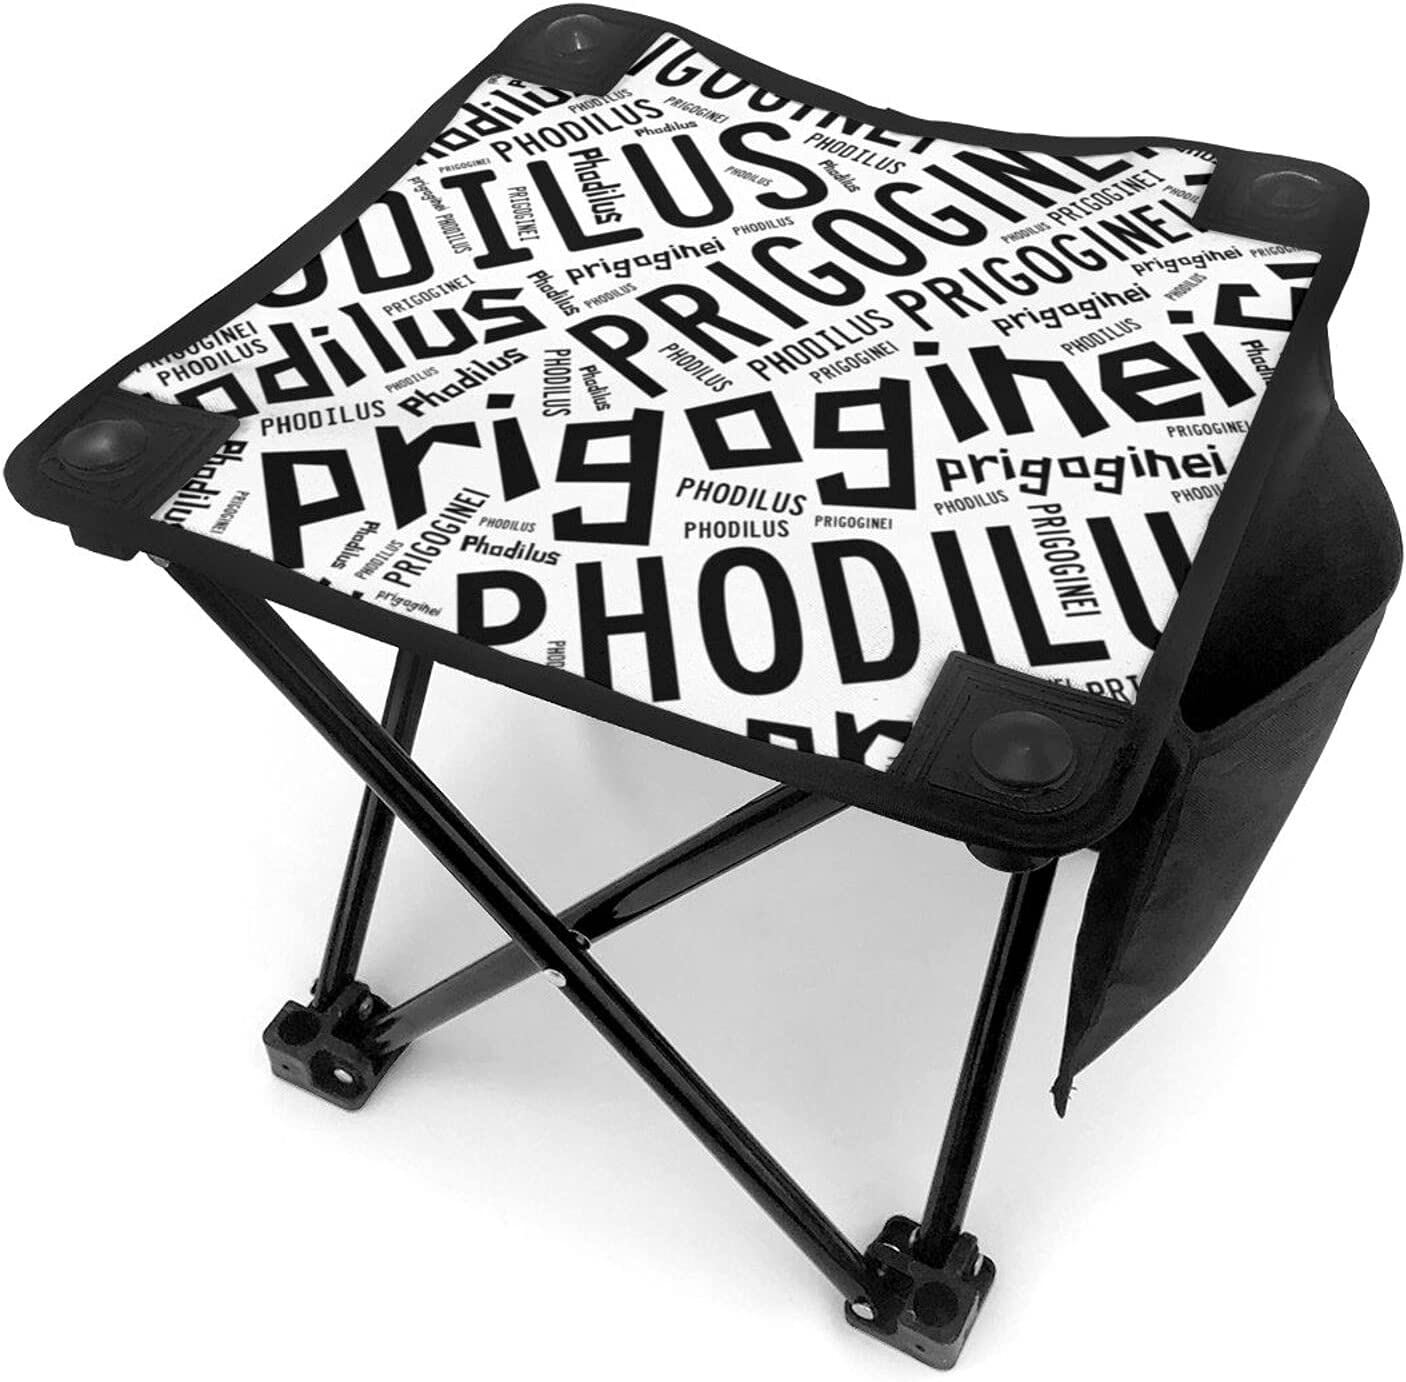 Endangered Species Phodilus Prigoginei Folding Brand Cheap Sale Venue Oxf Camping Stool Our shop OFFers the best service